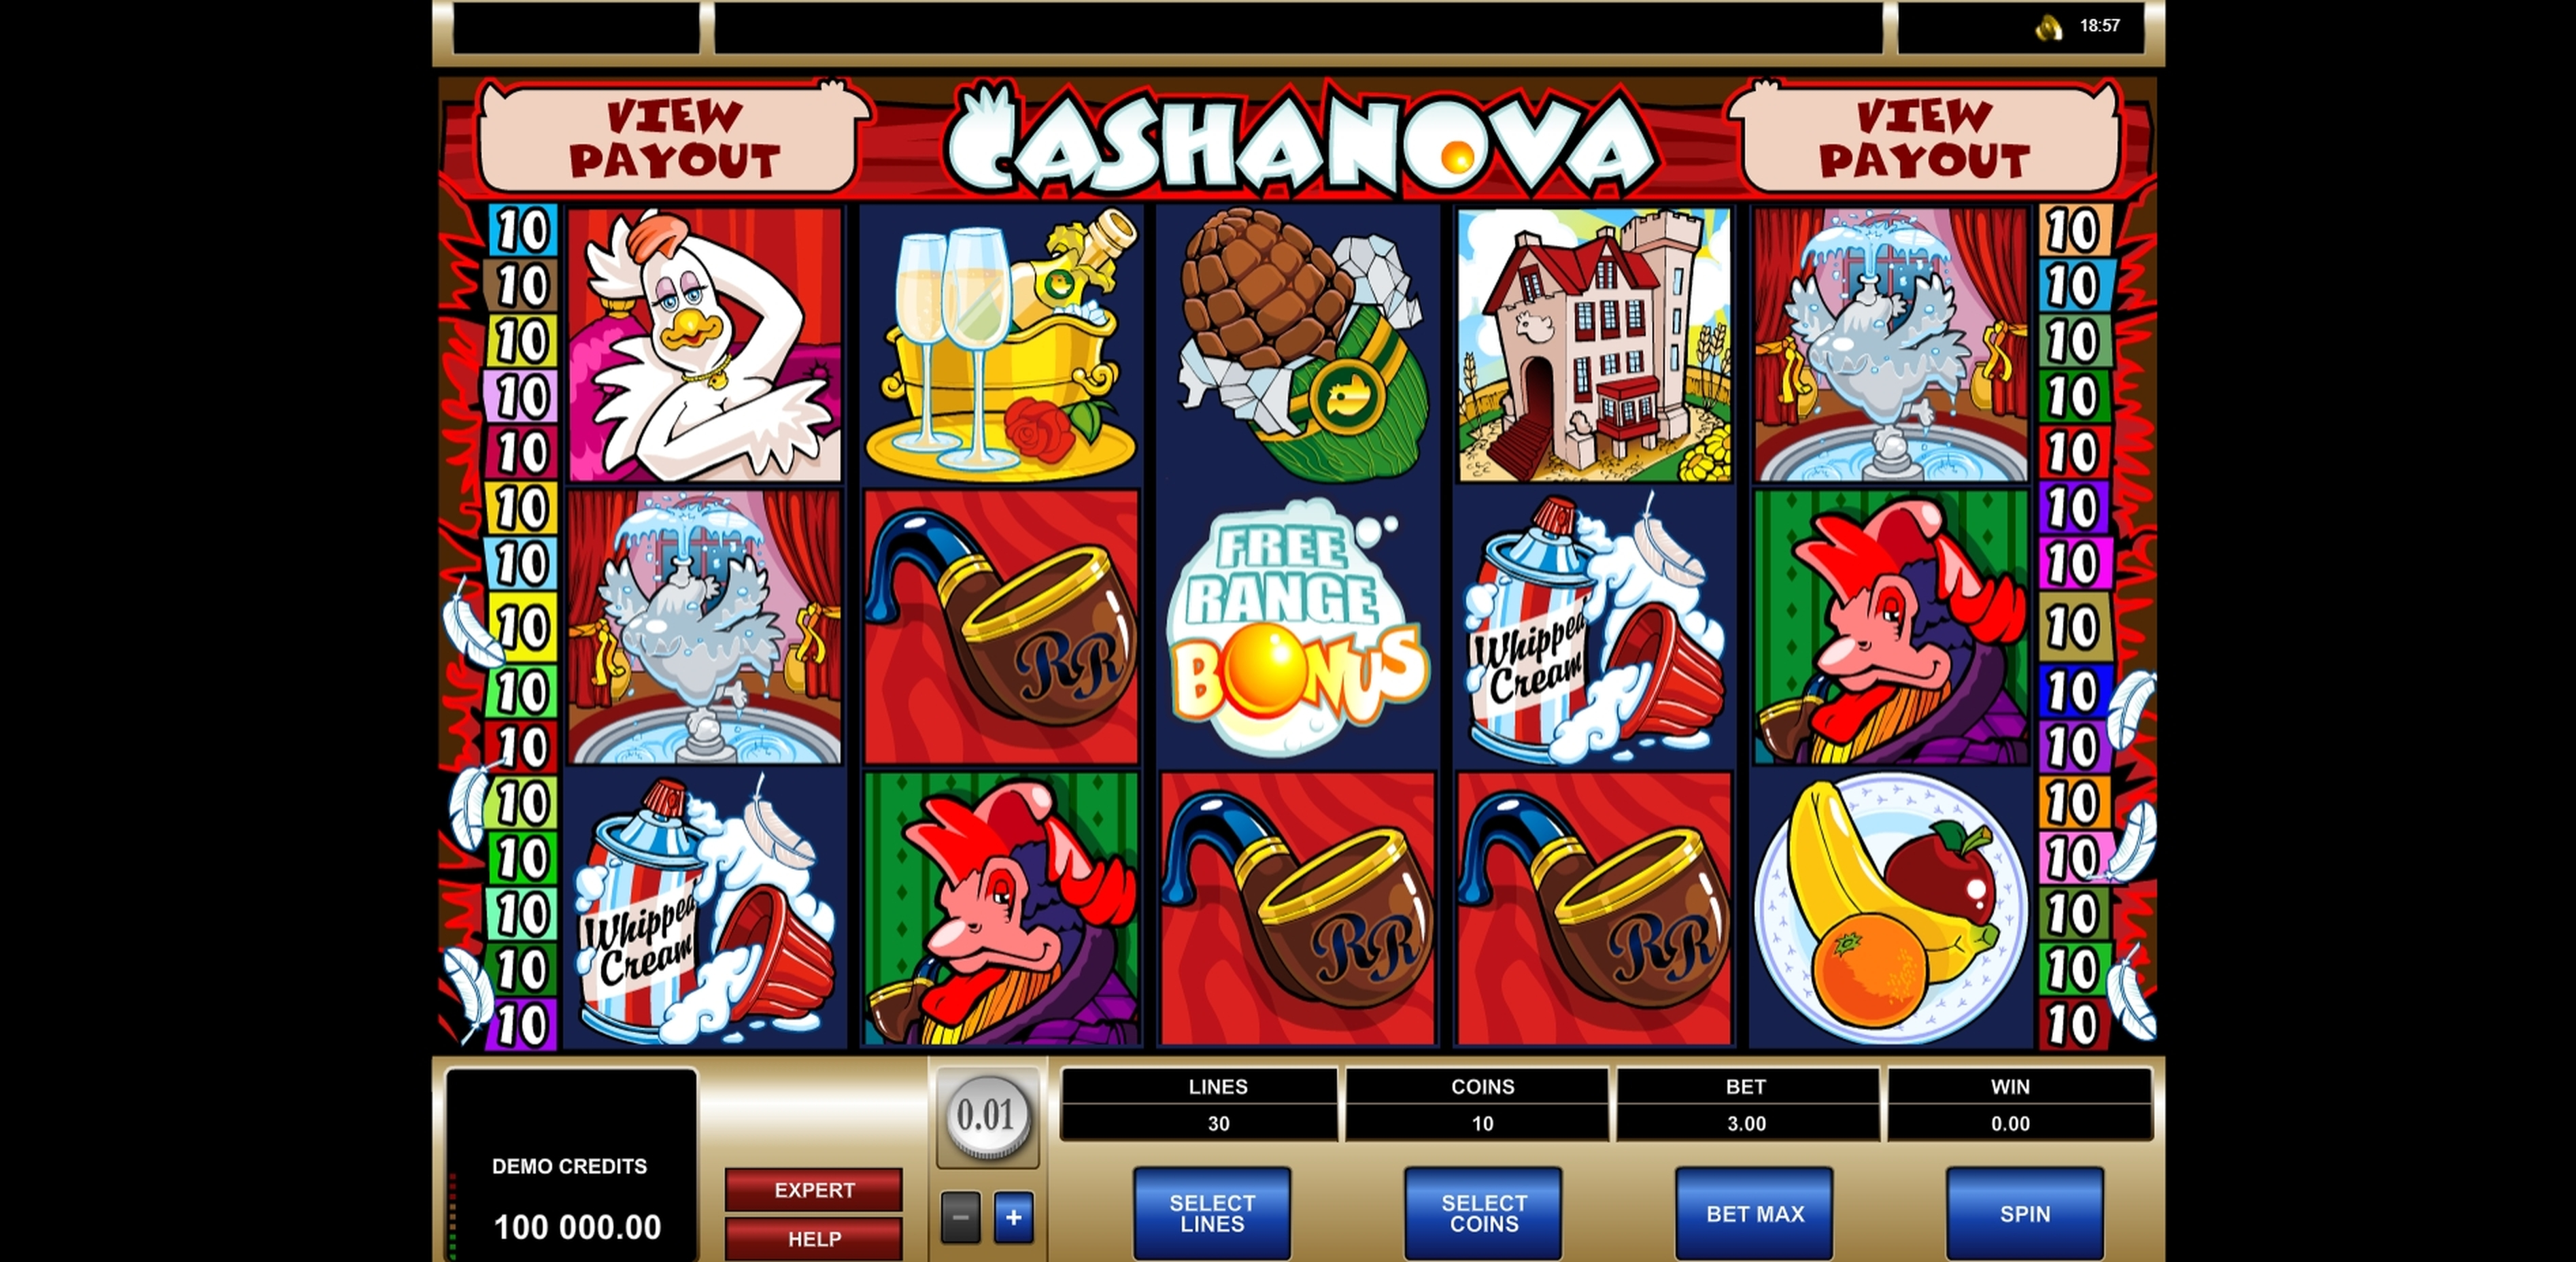 Reels in Cashanova Slot Game by Microgaming